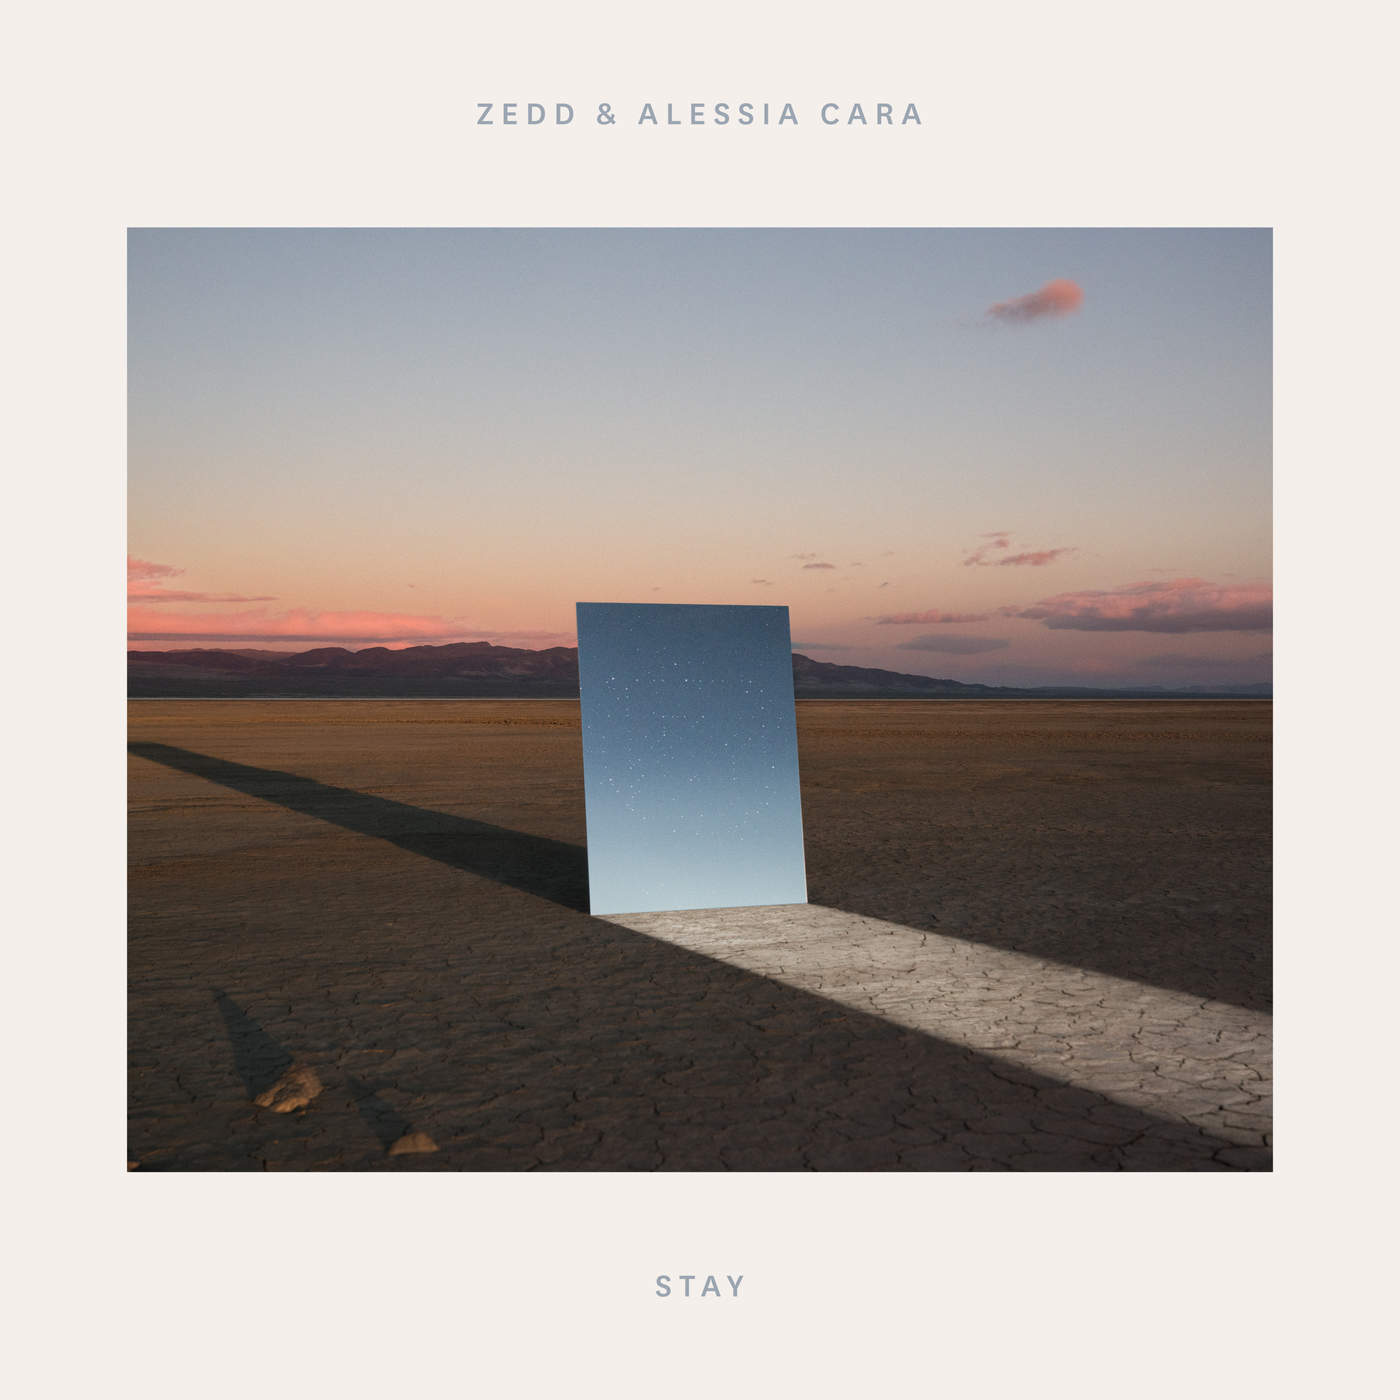 Zedd & Alessia Cara - Stay - Single Cover